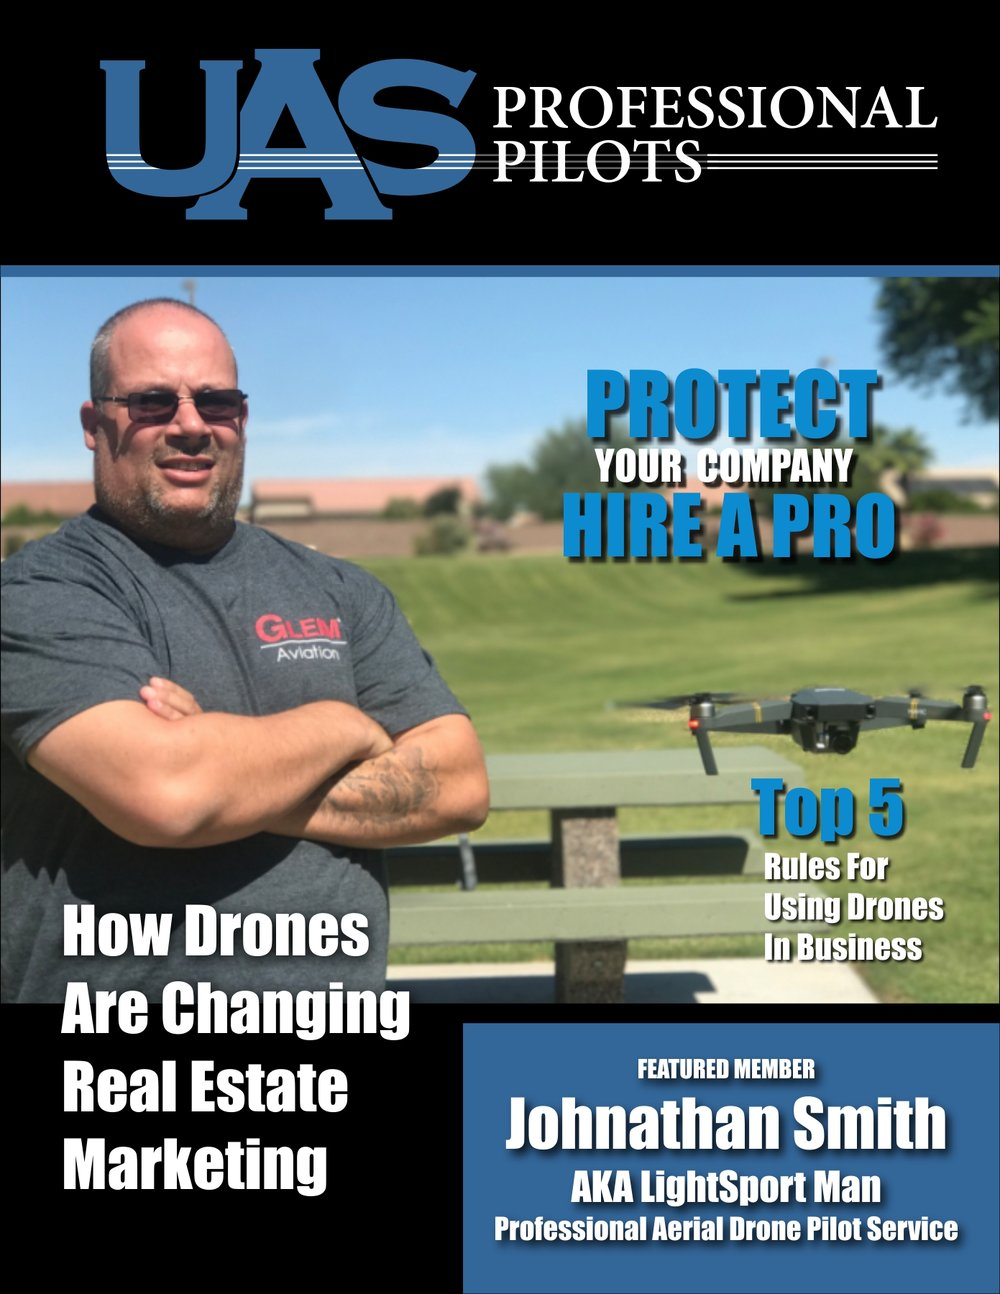 UAS PROFESSIONAL PILOT LIGHTSPORT - PROTECT YOUR COMPANY